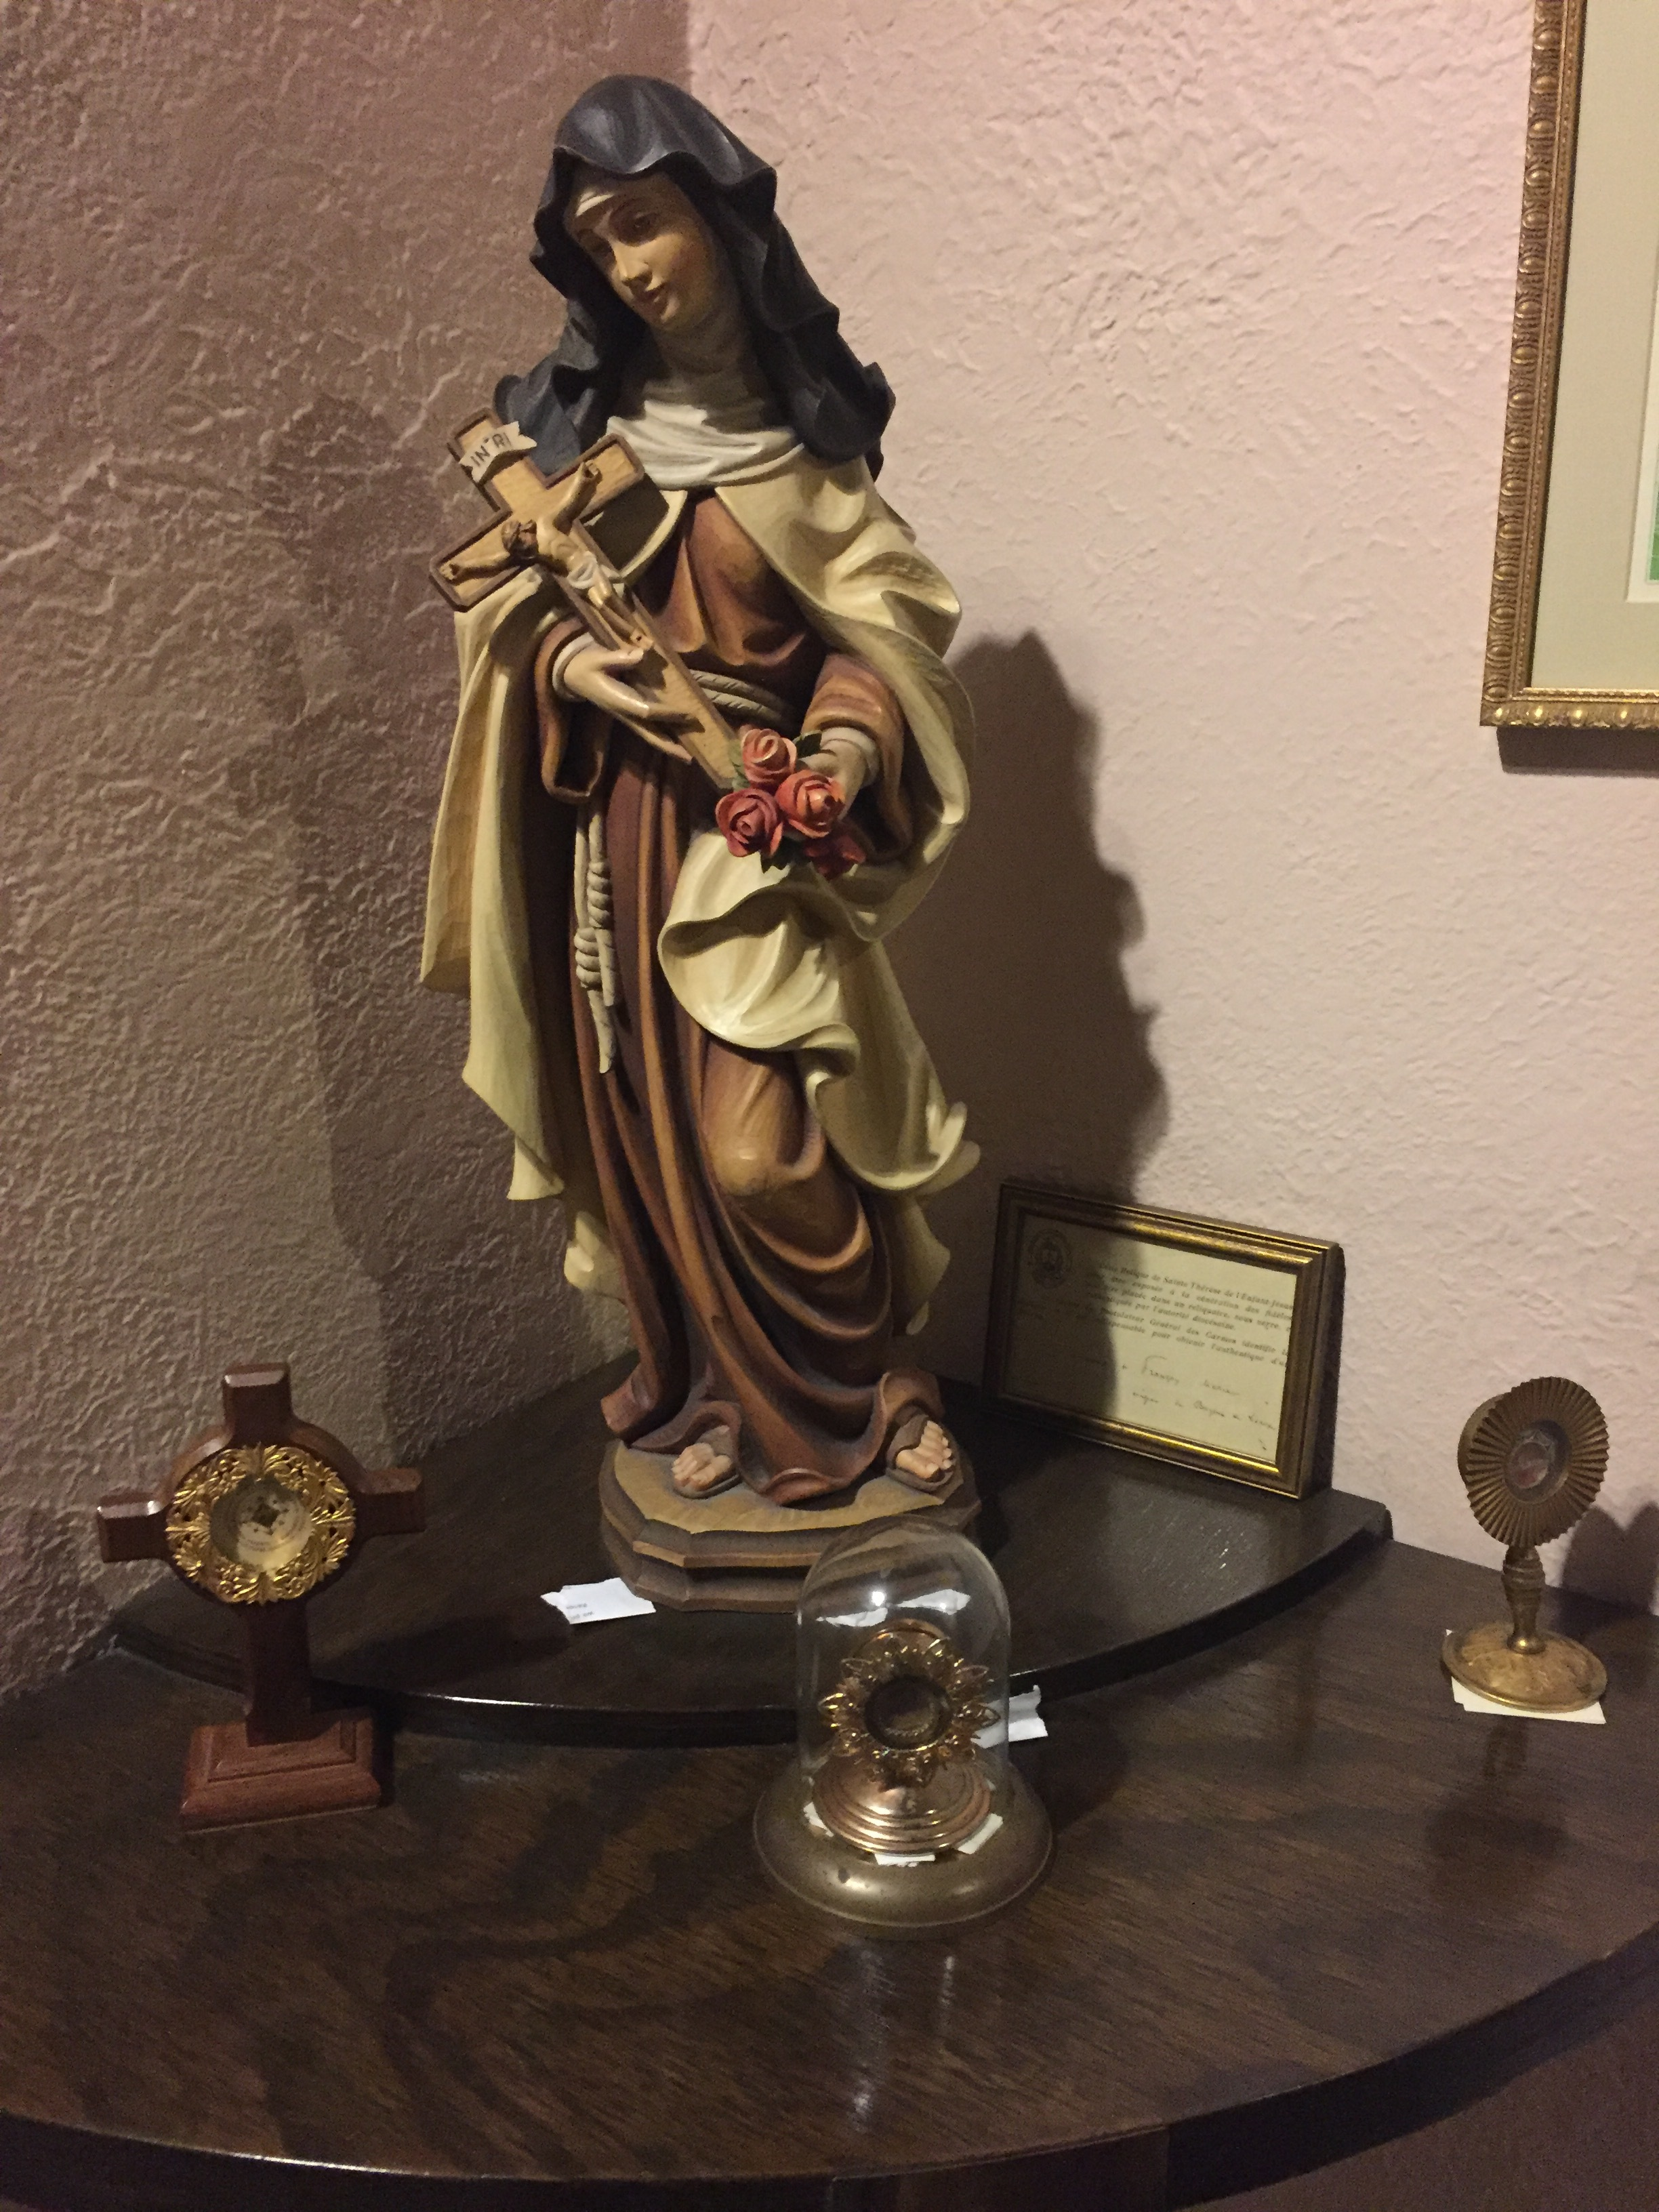 A statue of St. Therese. The three items in the foreground are relics from St. Therese.